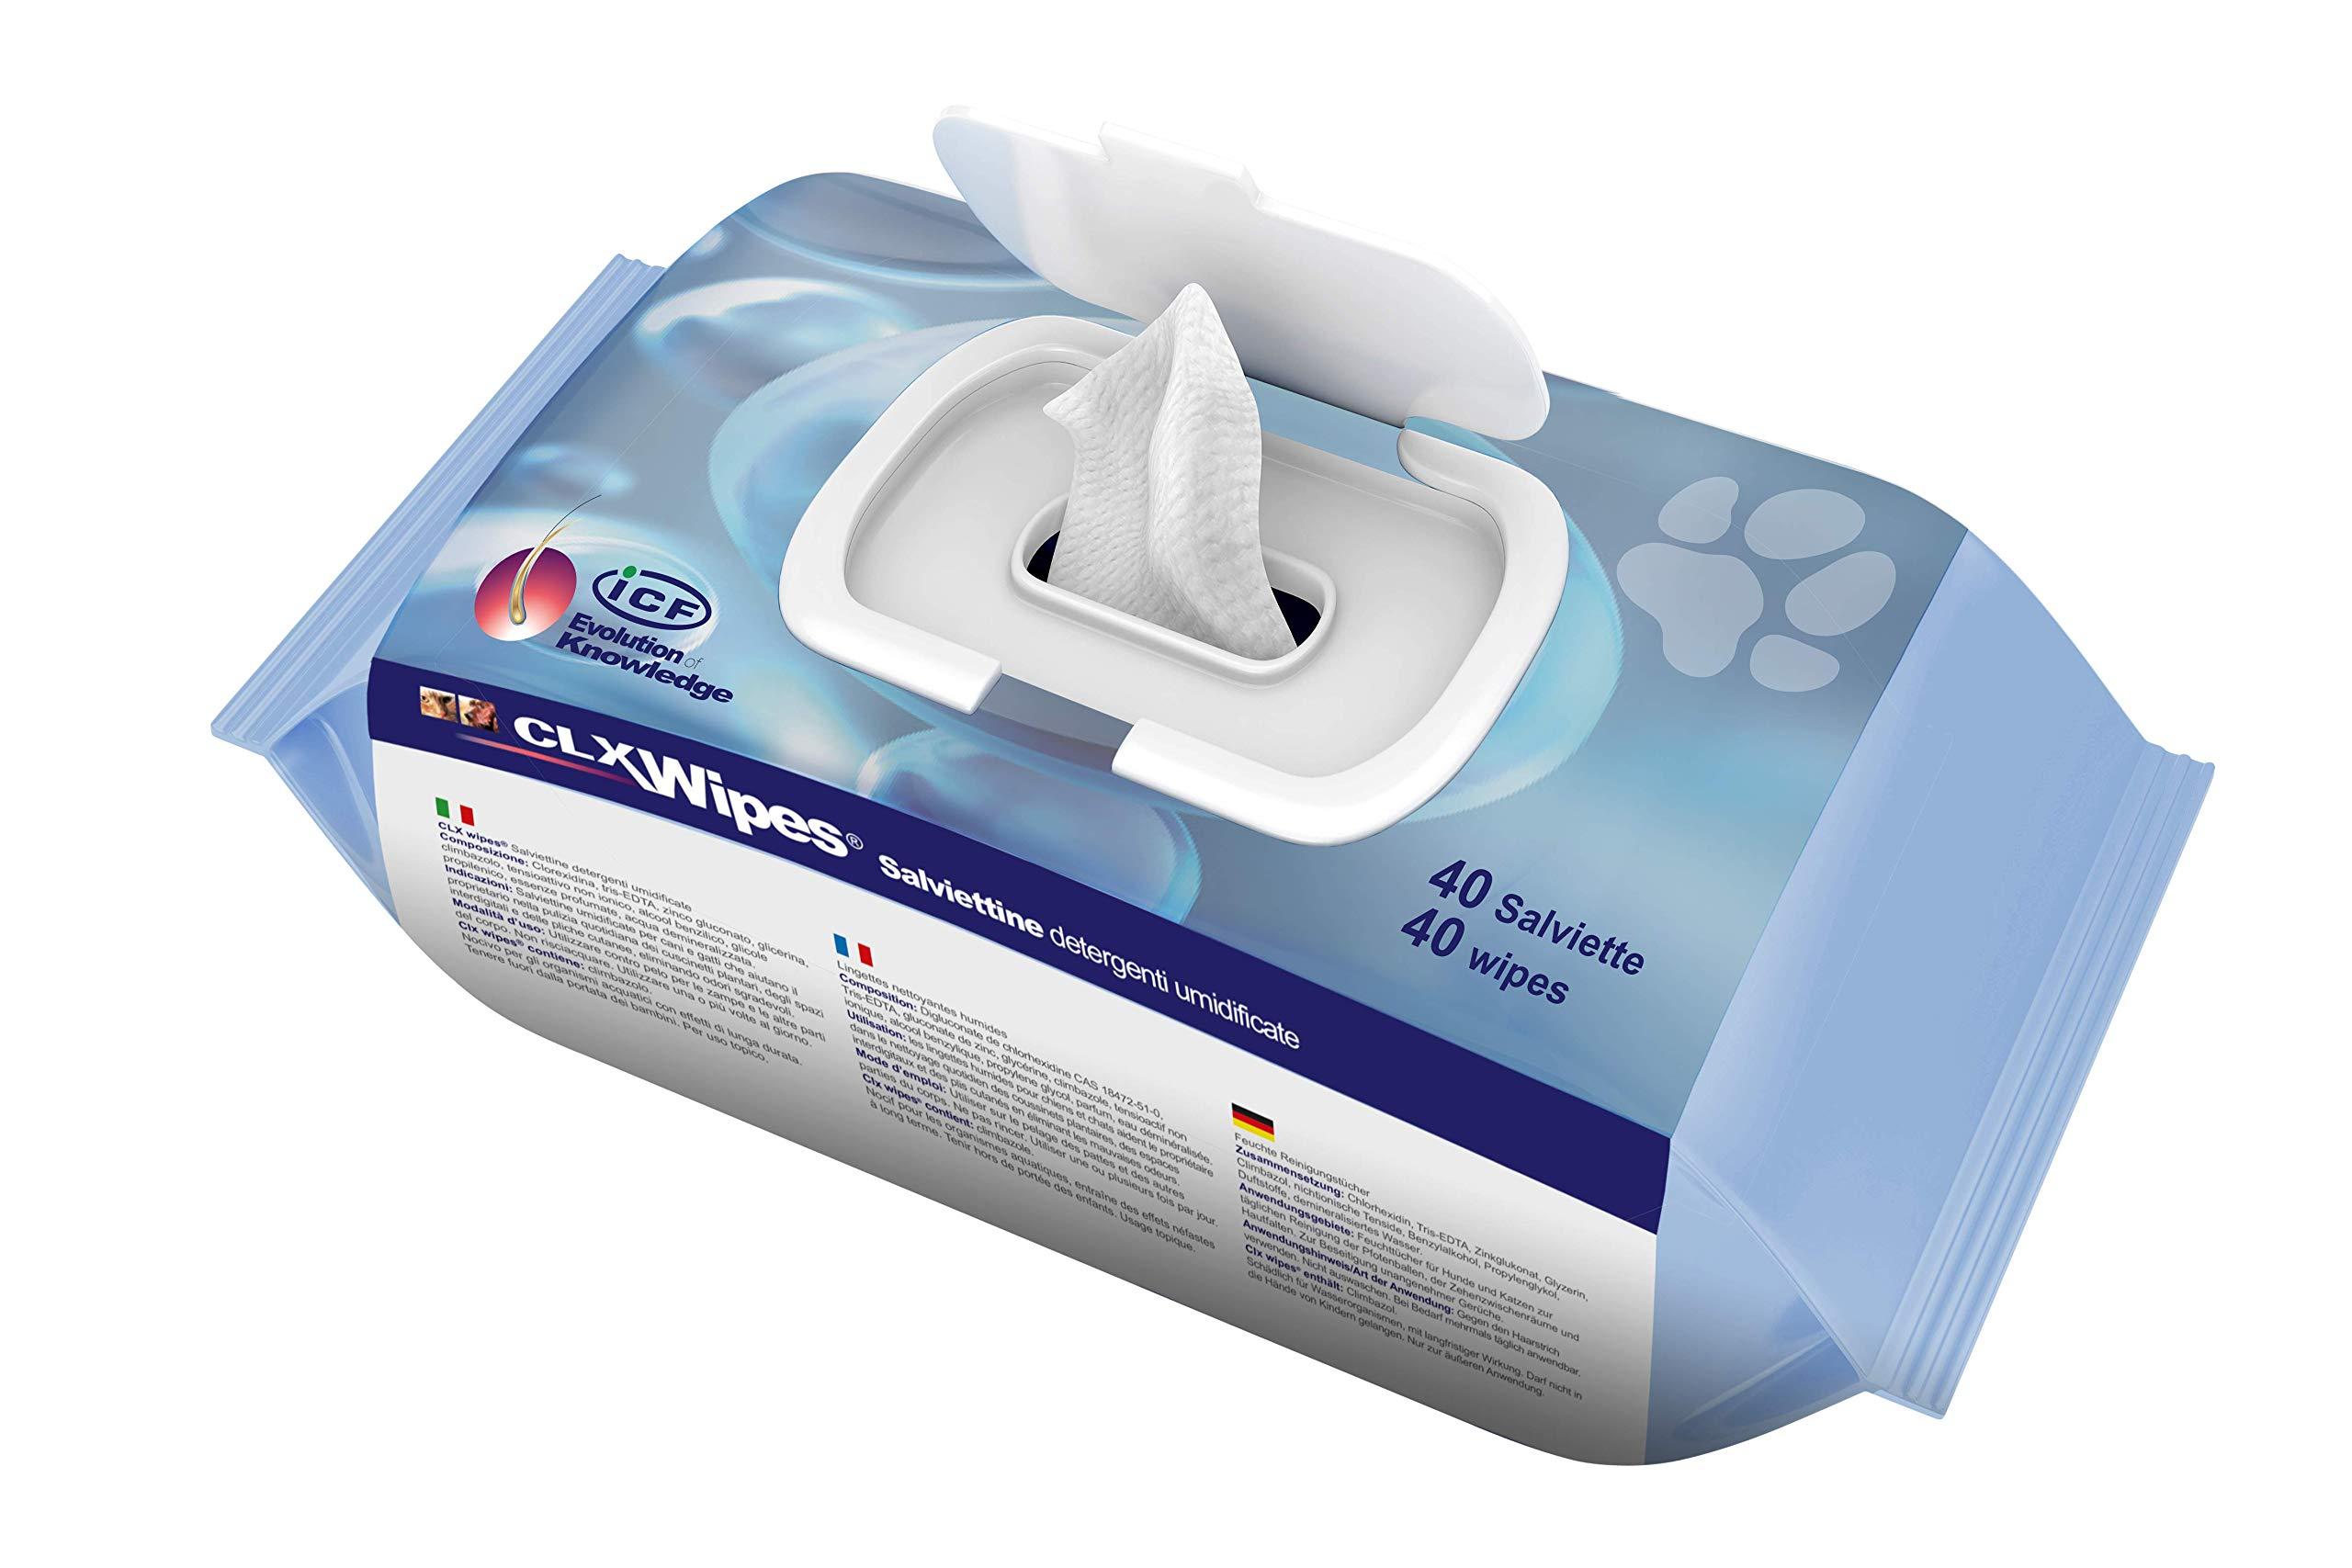 CLX Dog Puppy Cat and Pet Wipes – Antibacterial Antiseptic and Antifungal Grooming and Cleaning Wipes for Paw Ear Tushie Face and Bums – 40pck and Pocket size 20 pck